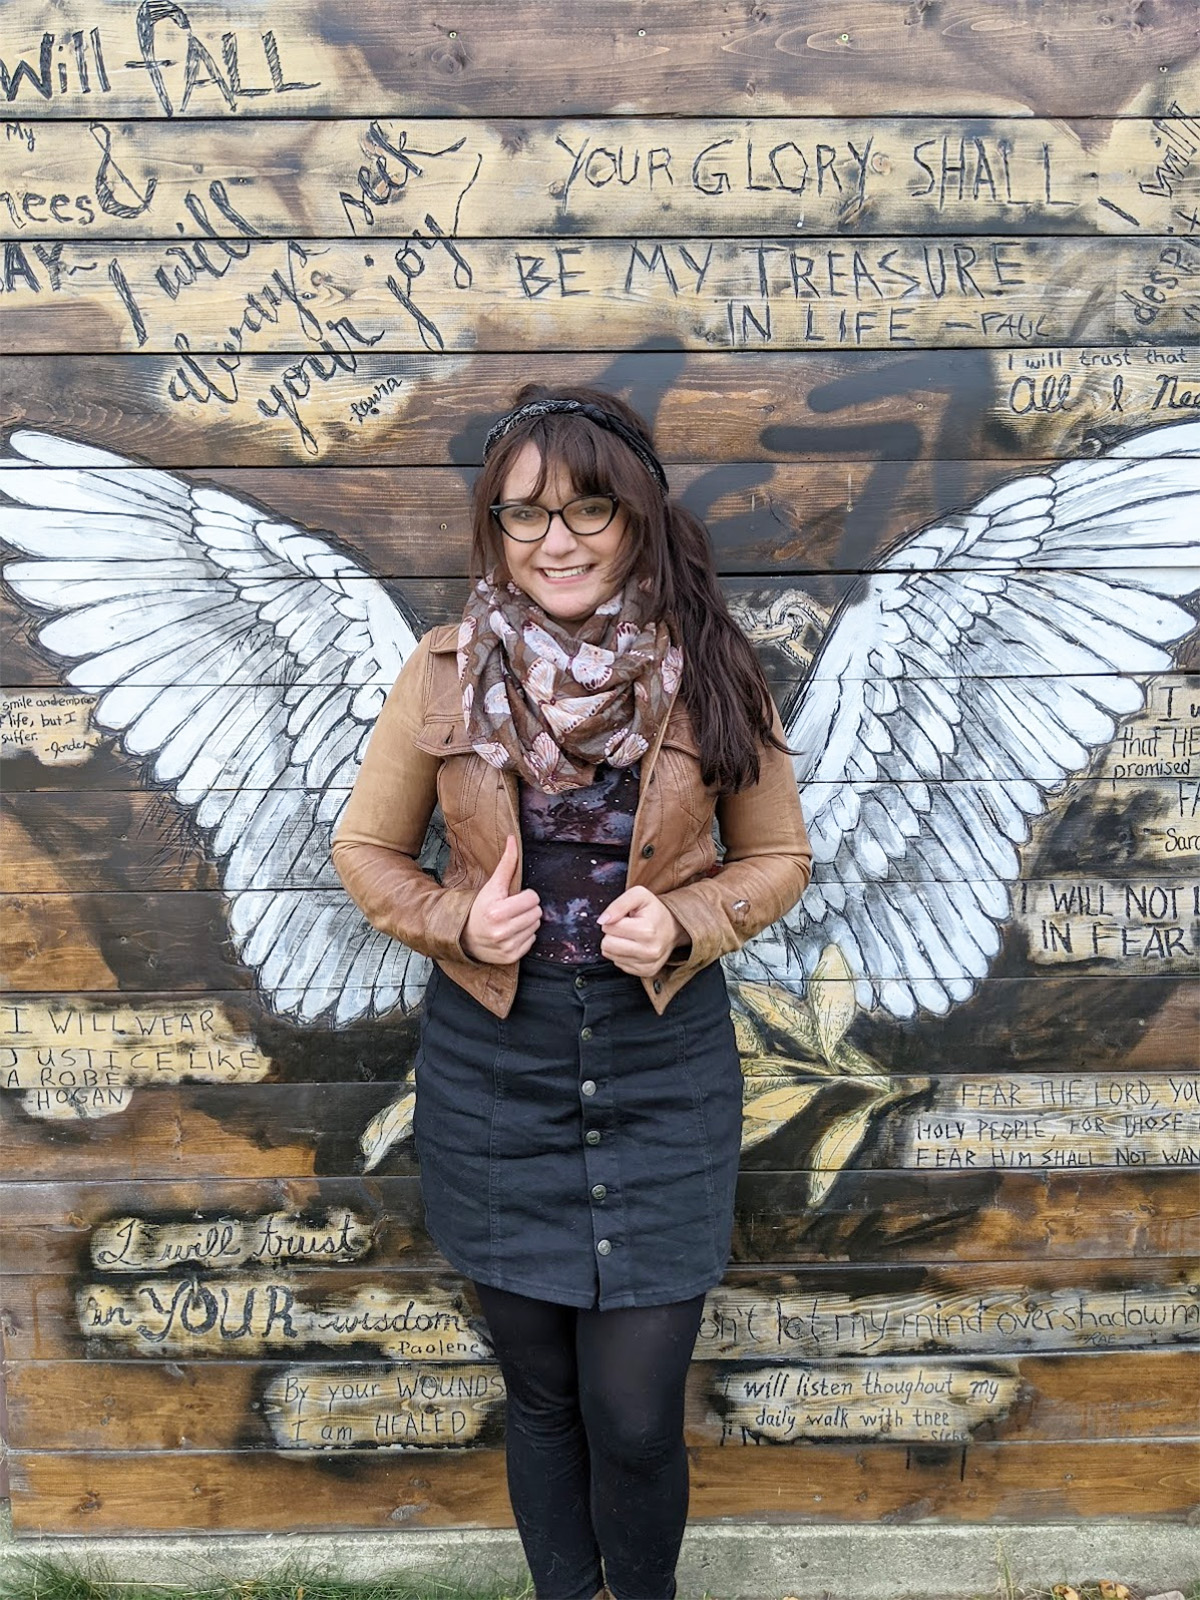 Instagrammable Walls of Edmonton - Explore Edmonton - Murals - Walls - Whyte Ave Old Strathcona - Knox Church Connor Cantelon Wings